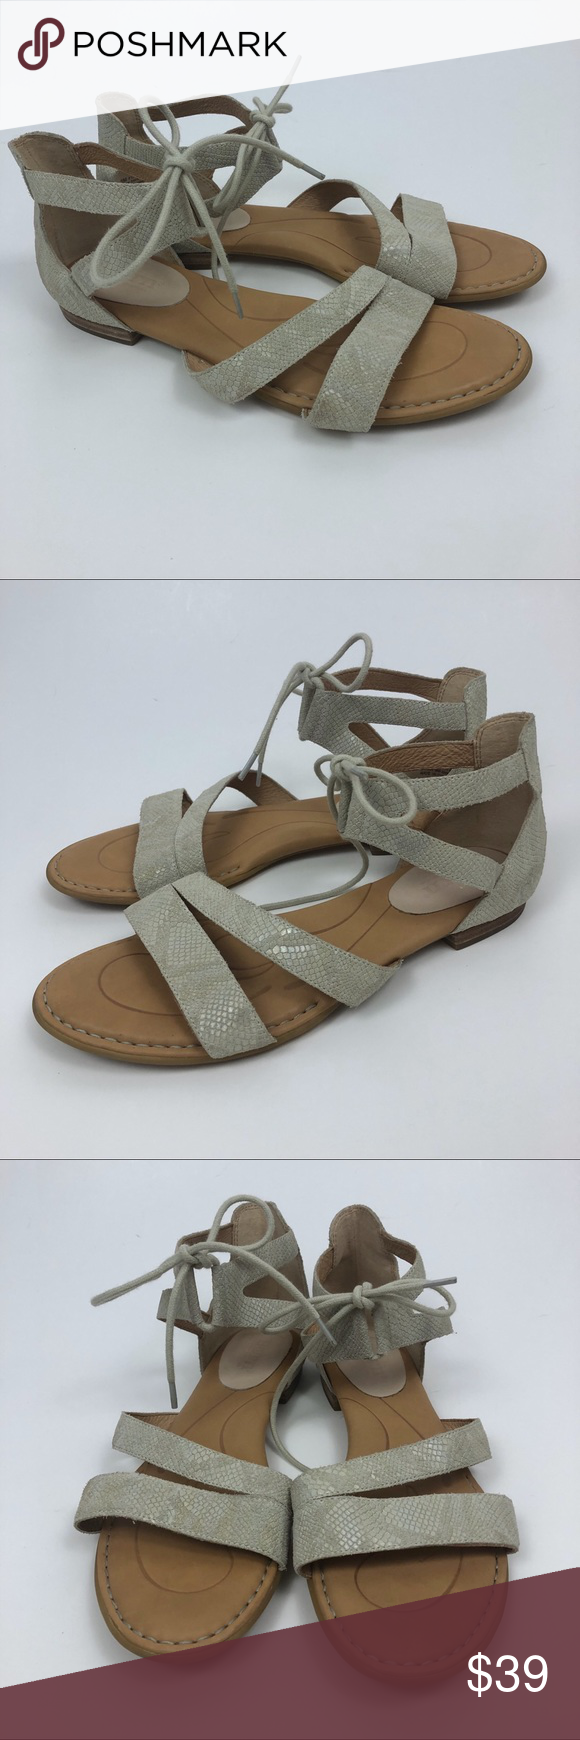 847ccb9b06f7 BORN Casma Snake Print Leather Gladiator Sandals BORN Womens Size 9 Casma  Snake Print Leather Gladiator Sandal Shoes Creme Gently pre-owned condition  with ...